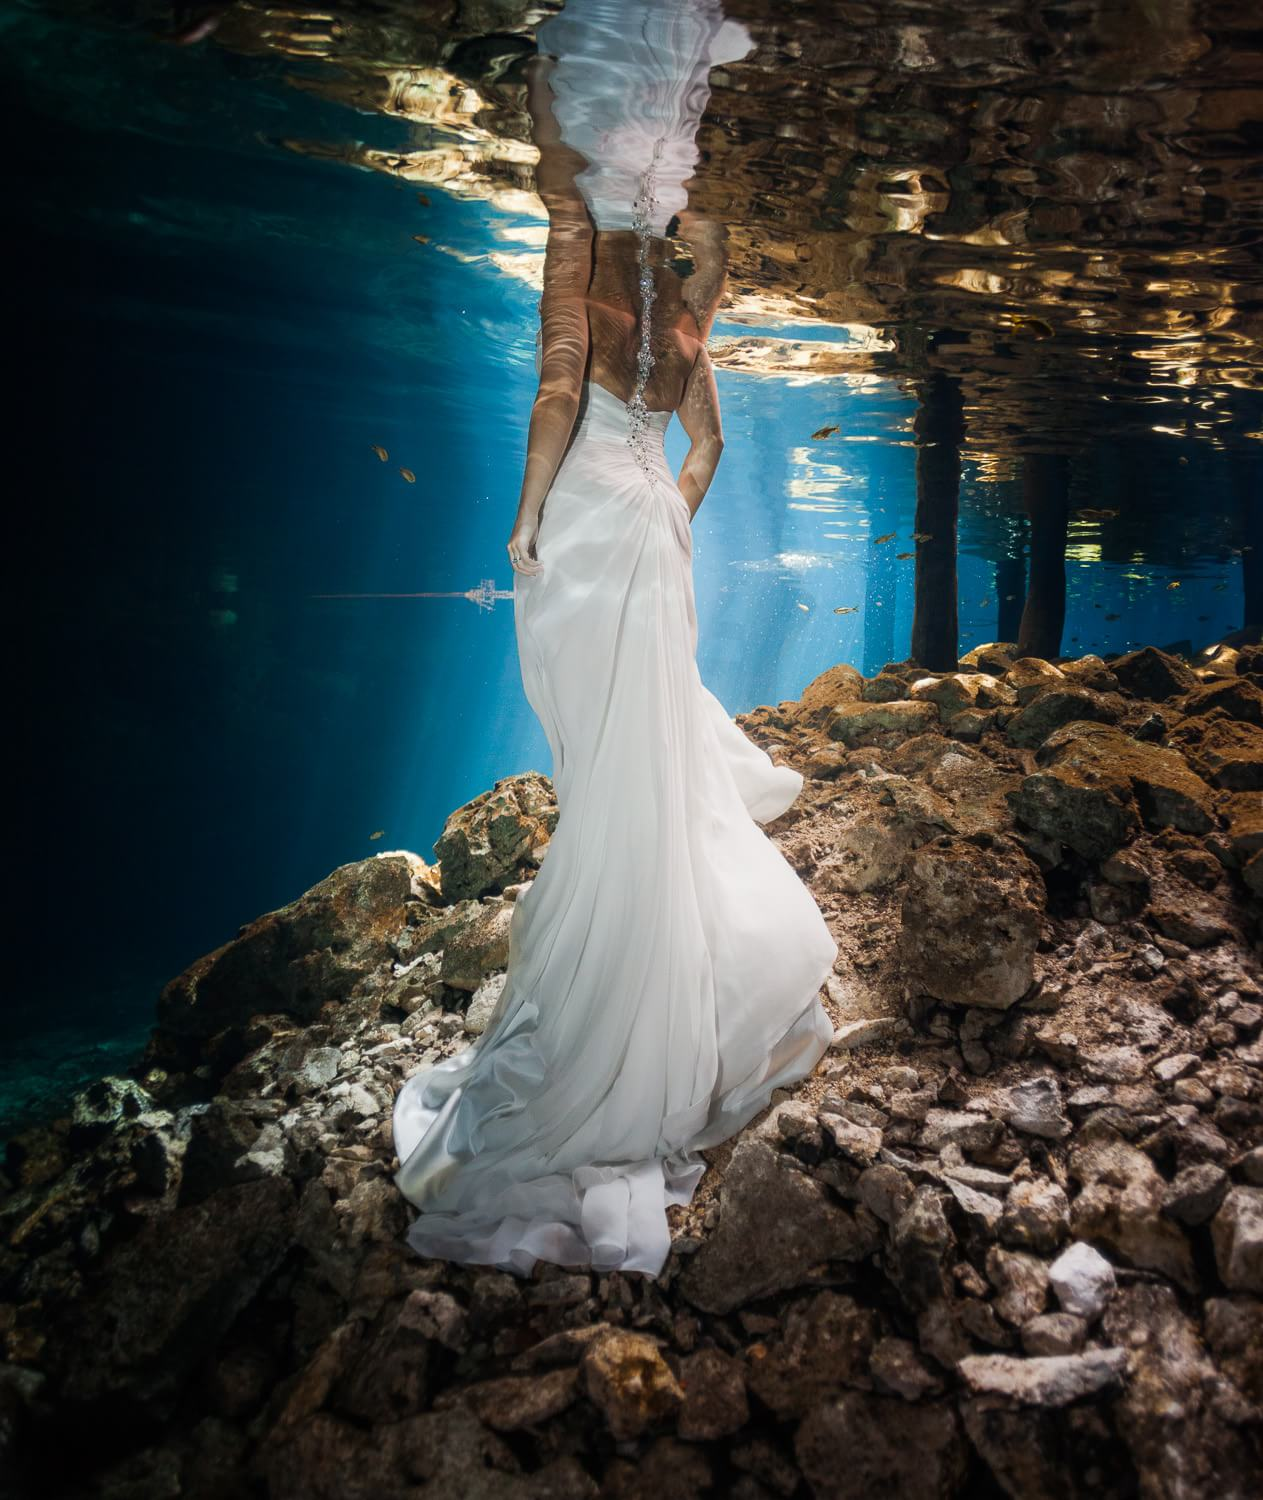 Back of dress in underwater Trash the dress